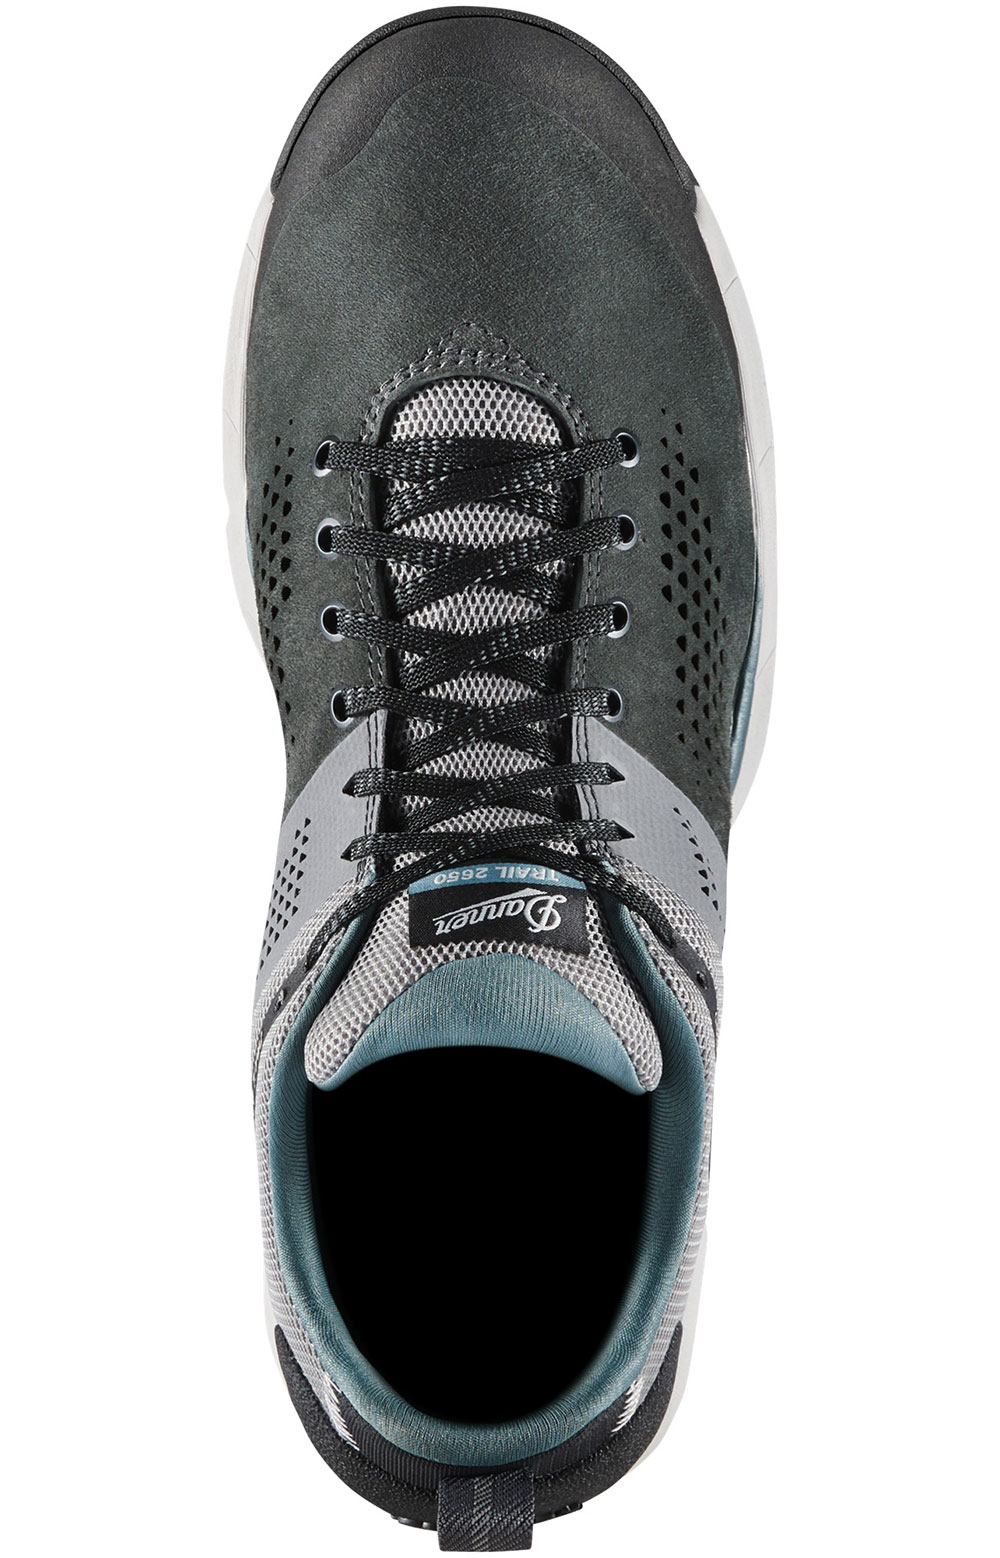 (61282) Trail 2650 Shoes - Charcoal/Goblin Blue 5